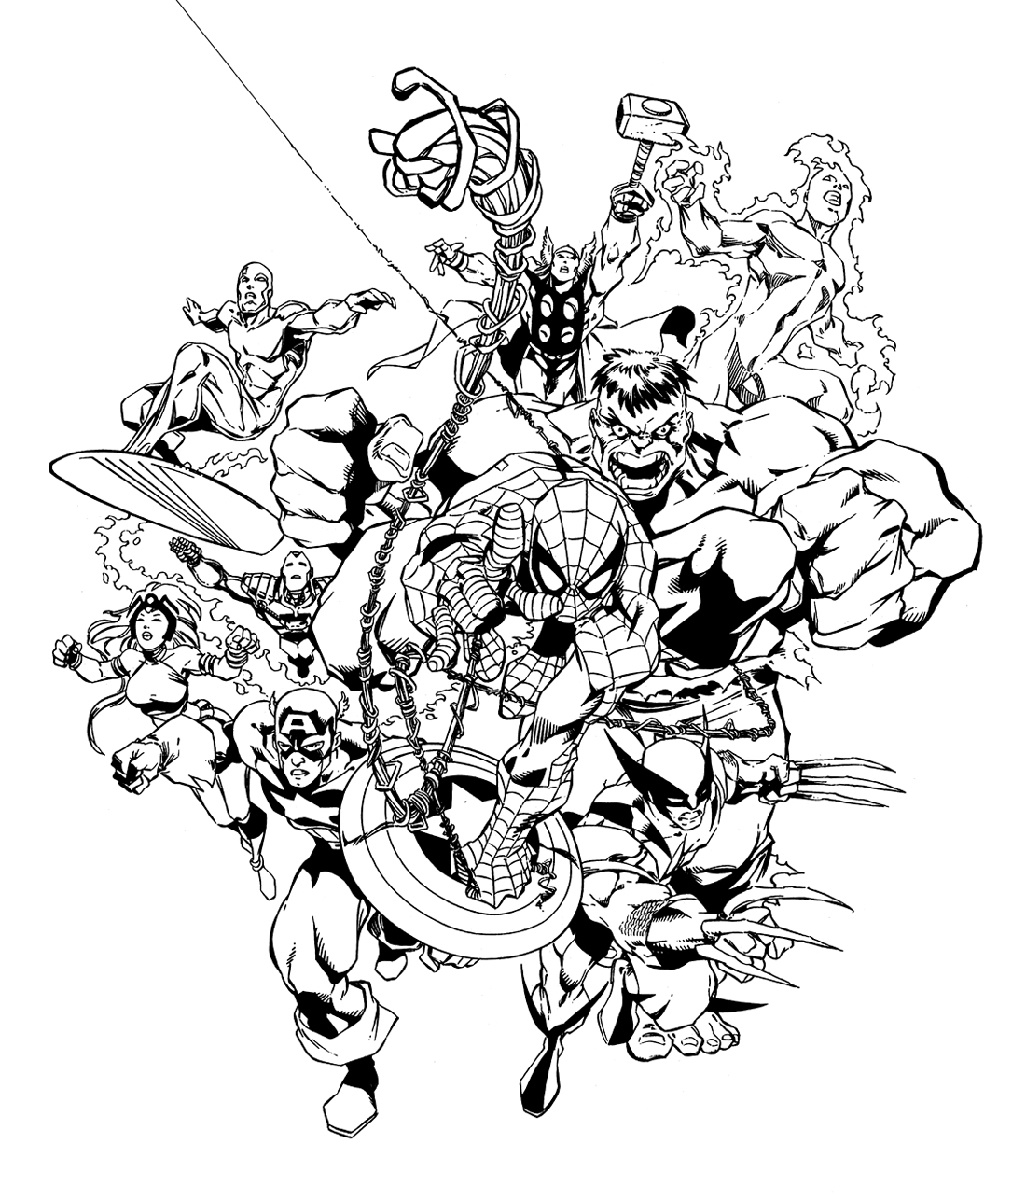 marvel avengers coloring pages avengers coloring pages from marvel k5 worksheets pages coloring marvel avengers